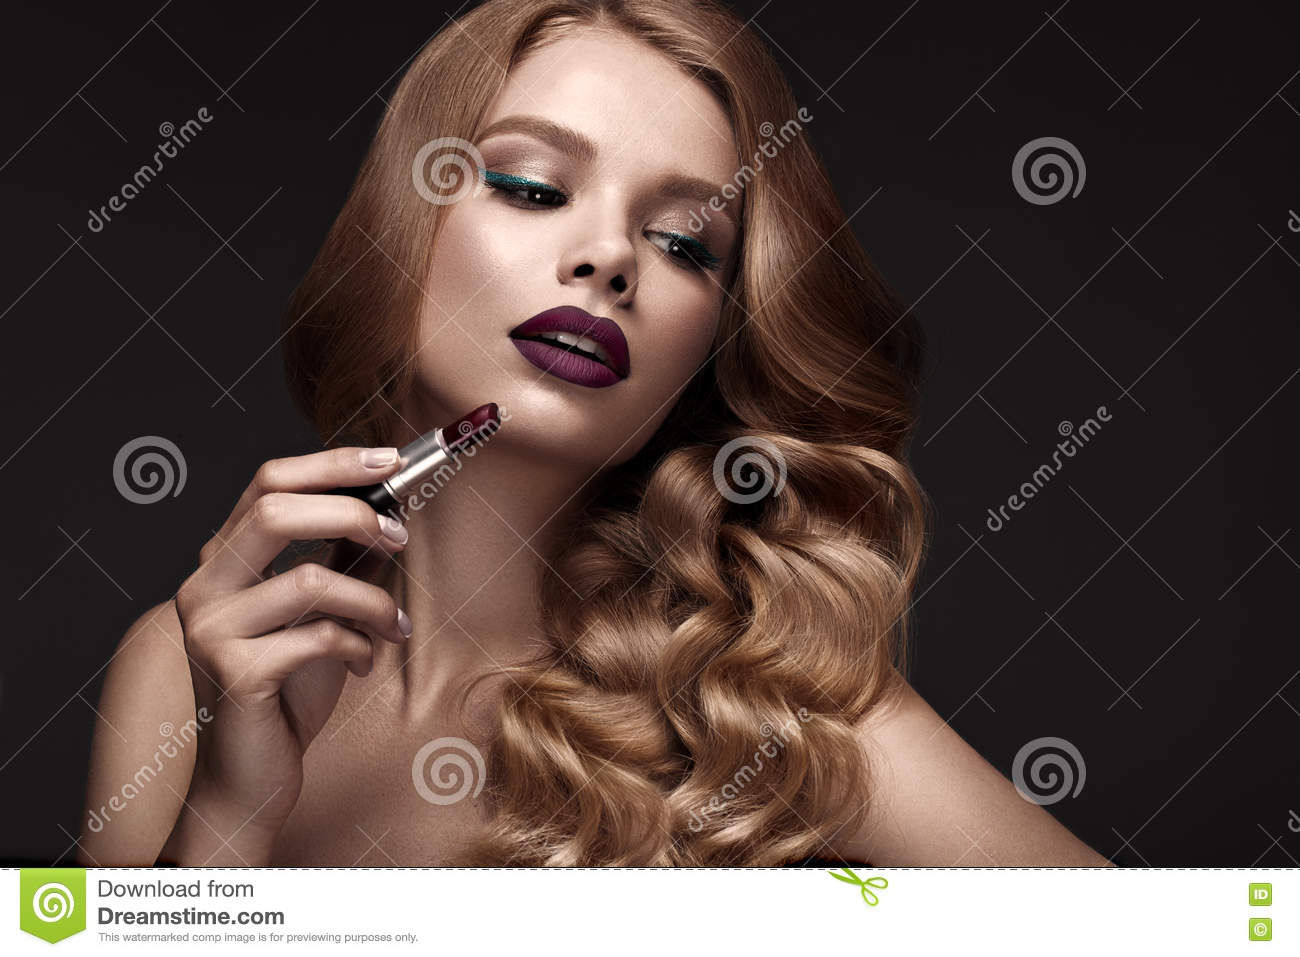 Beautiful blonde in a Hollywood manner with curls, dark lips, lipstick in hand. Beauty face and hair.